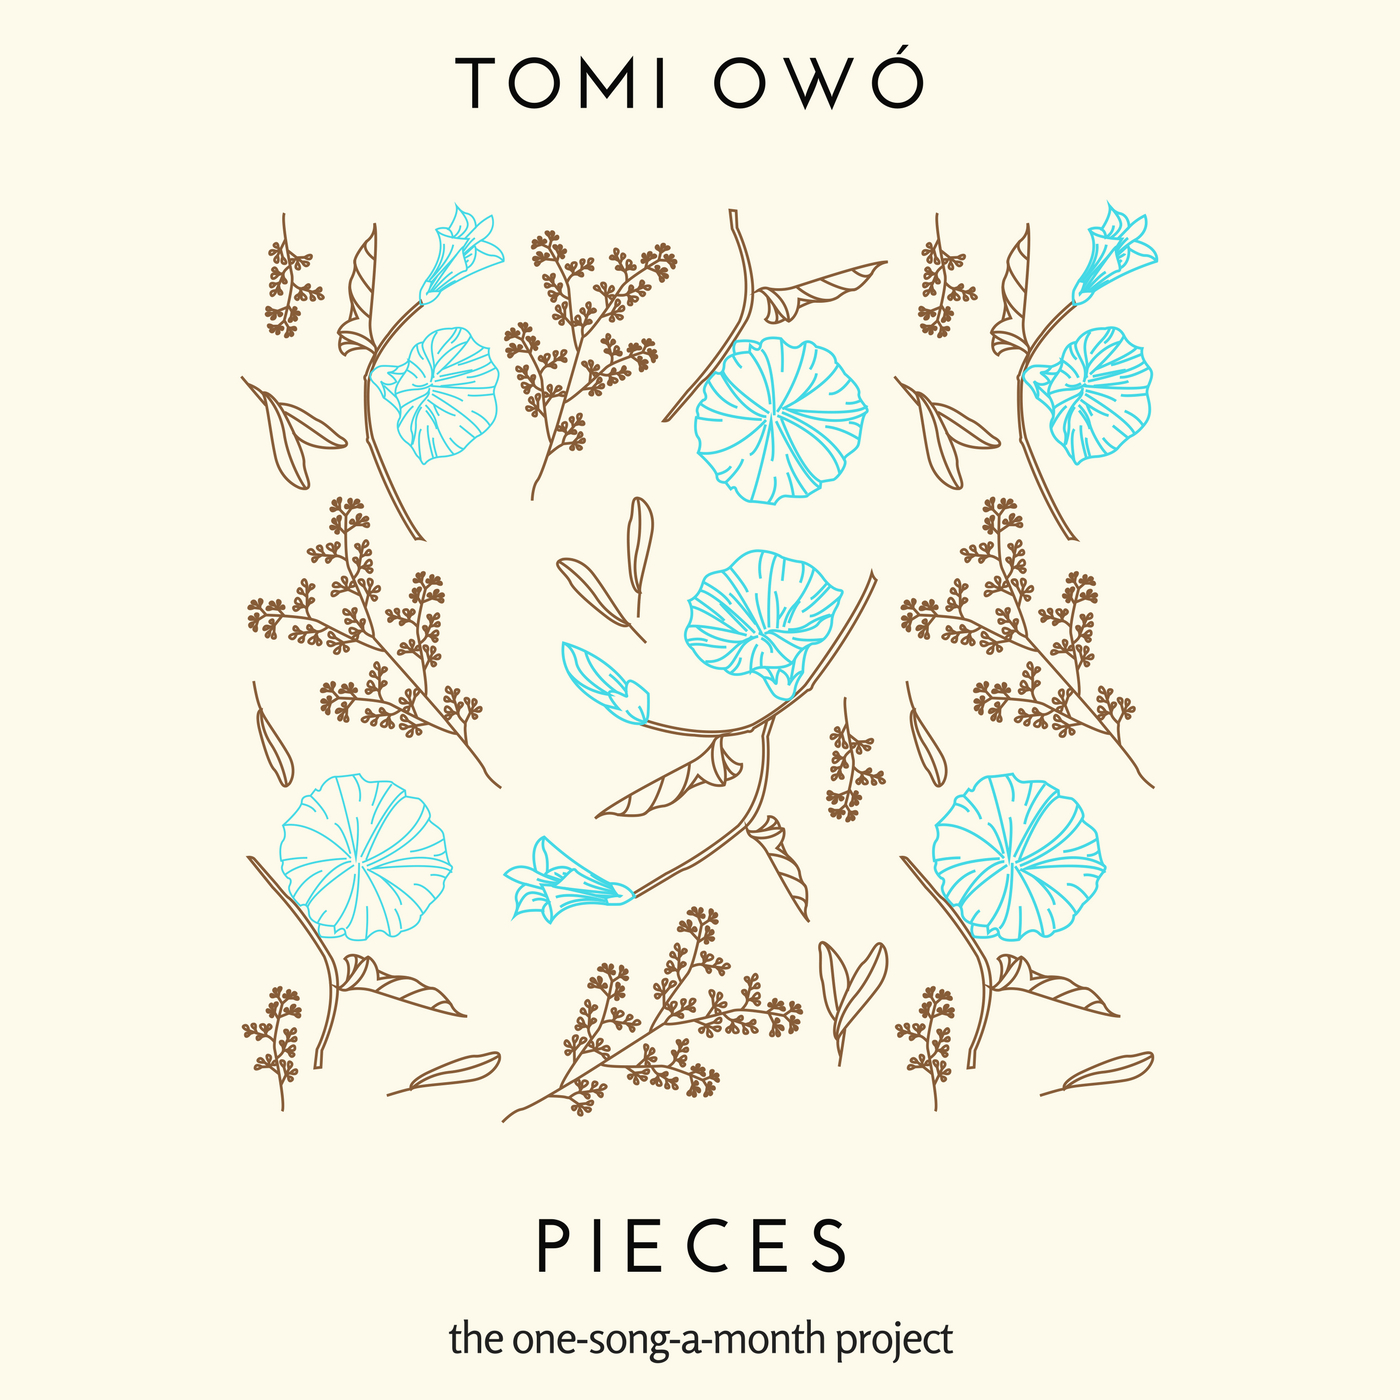 Pieces project